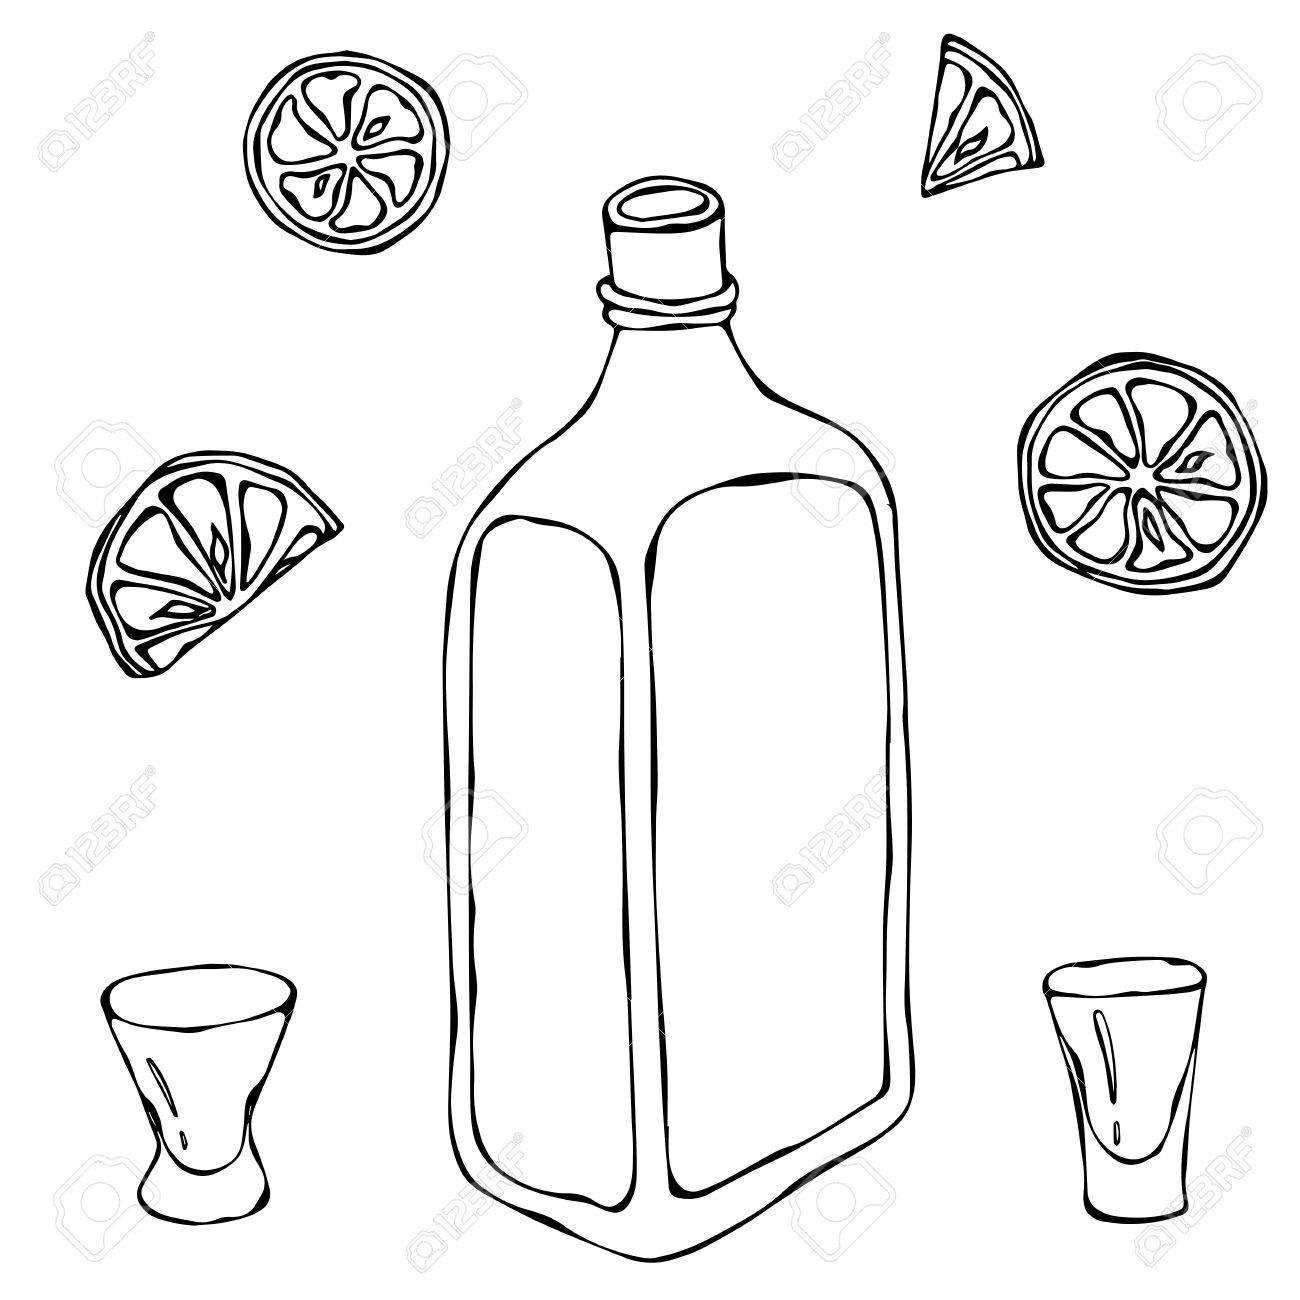 1300x1300 Whiskey Cognac Or Brandy Bottle And Shot Glass Sketch. With Citrus